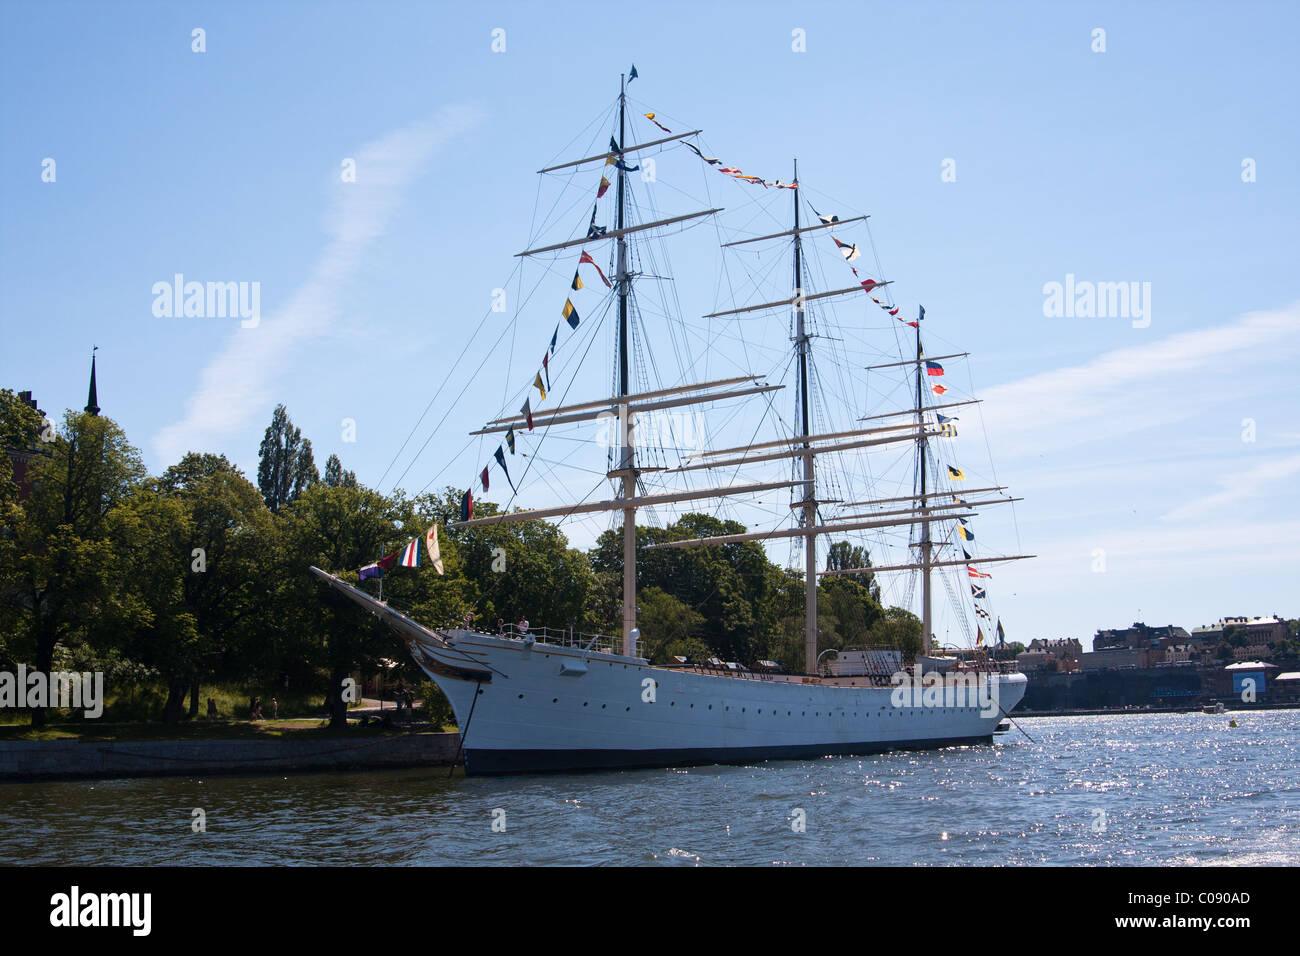 The AF Chapman, a square-rigged tall-ship that is moored at Skeppsholmen in the harbor in Stockholm, Sweden. Stock Photo